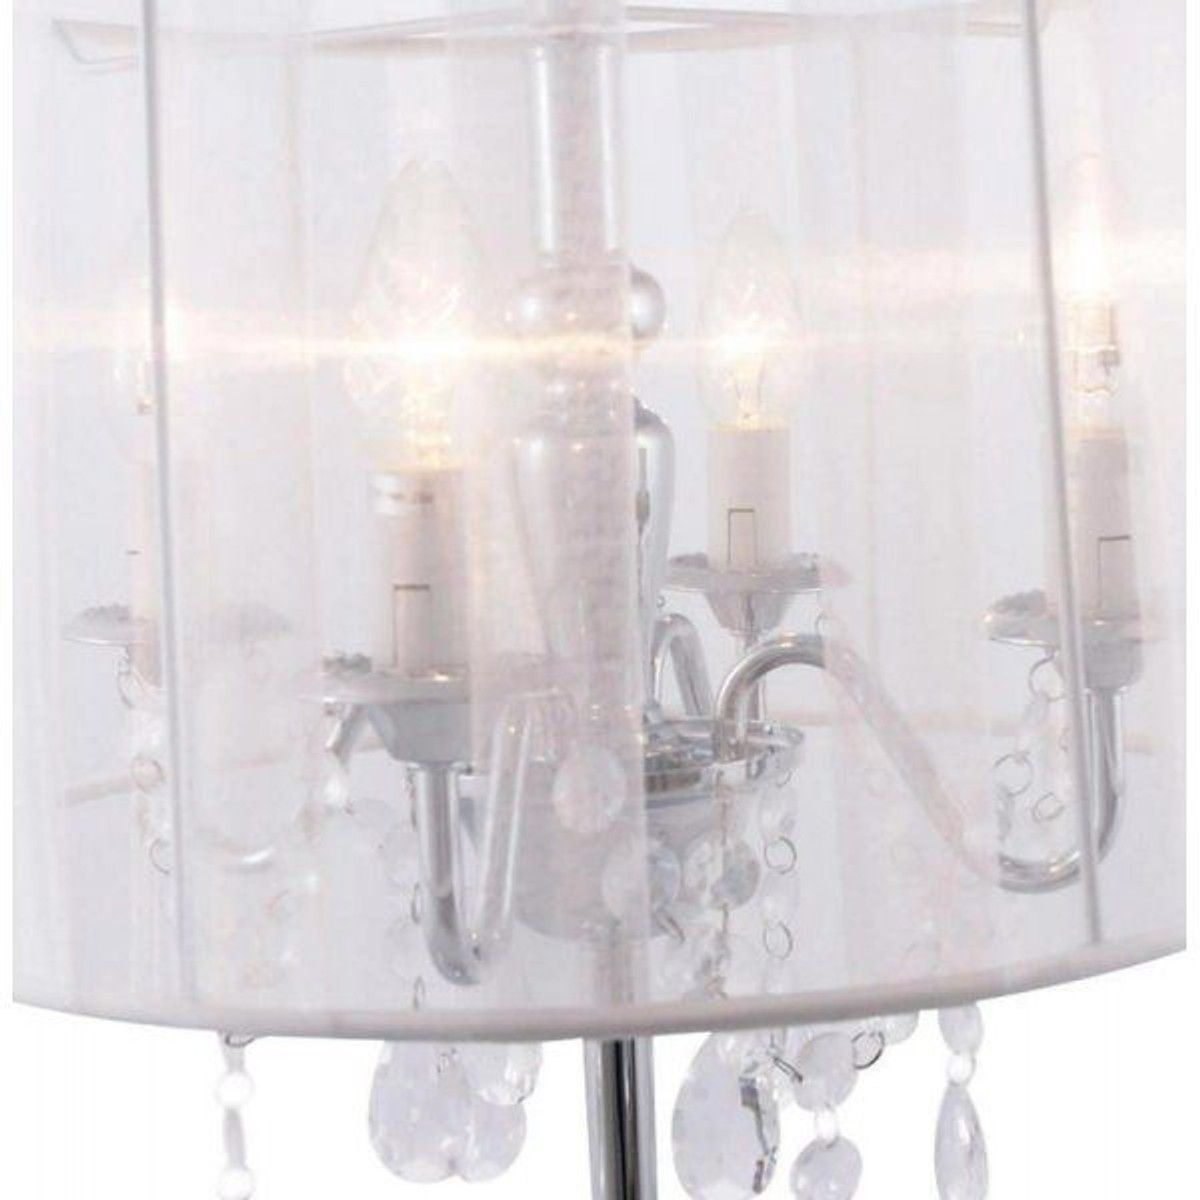 De Table TailleUniqueProducts Lampe Costes OXkuPZi